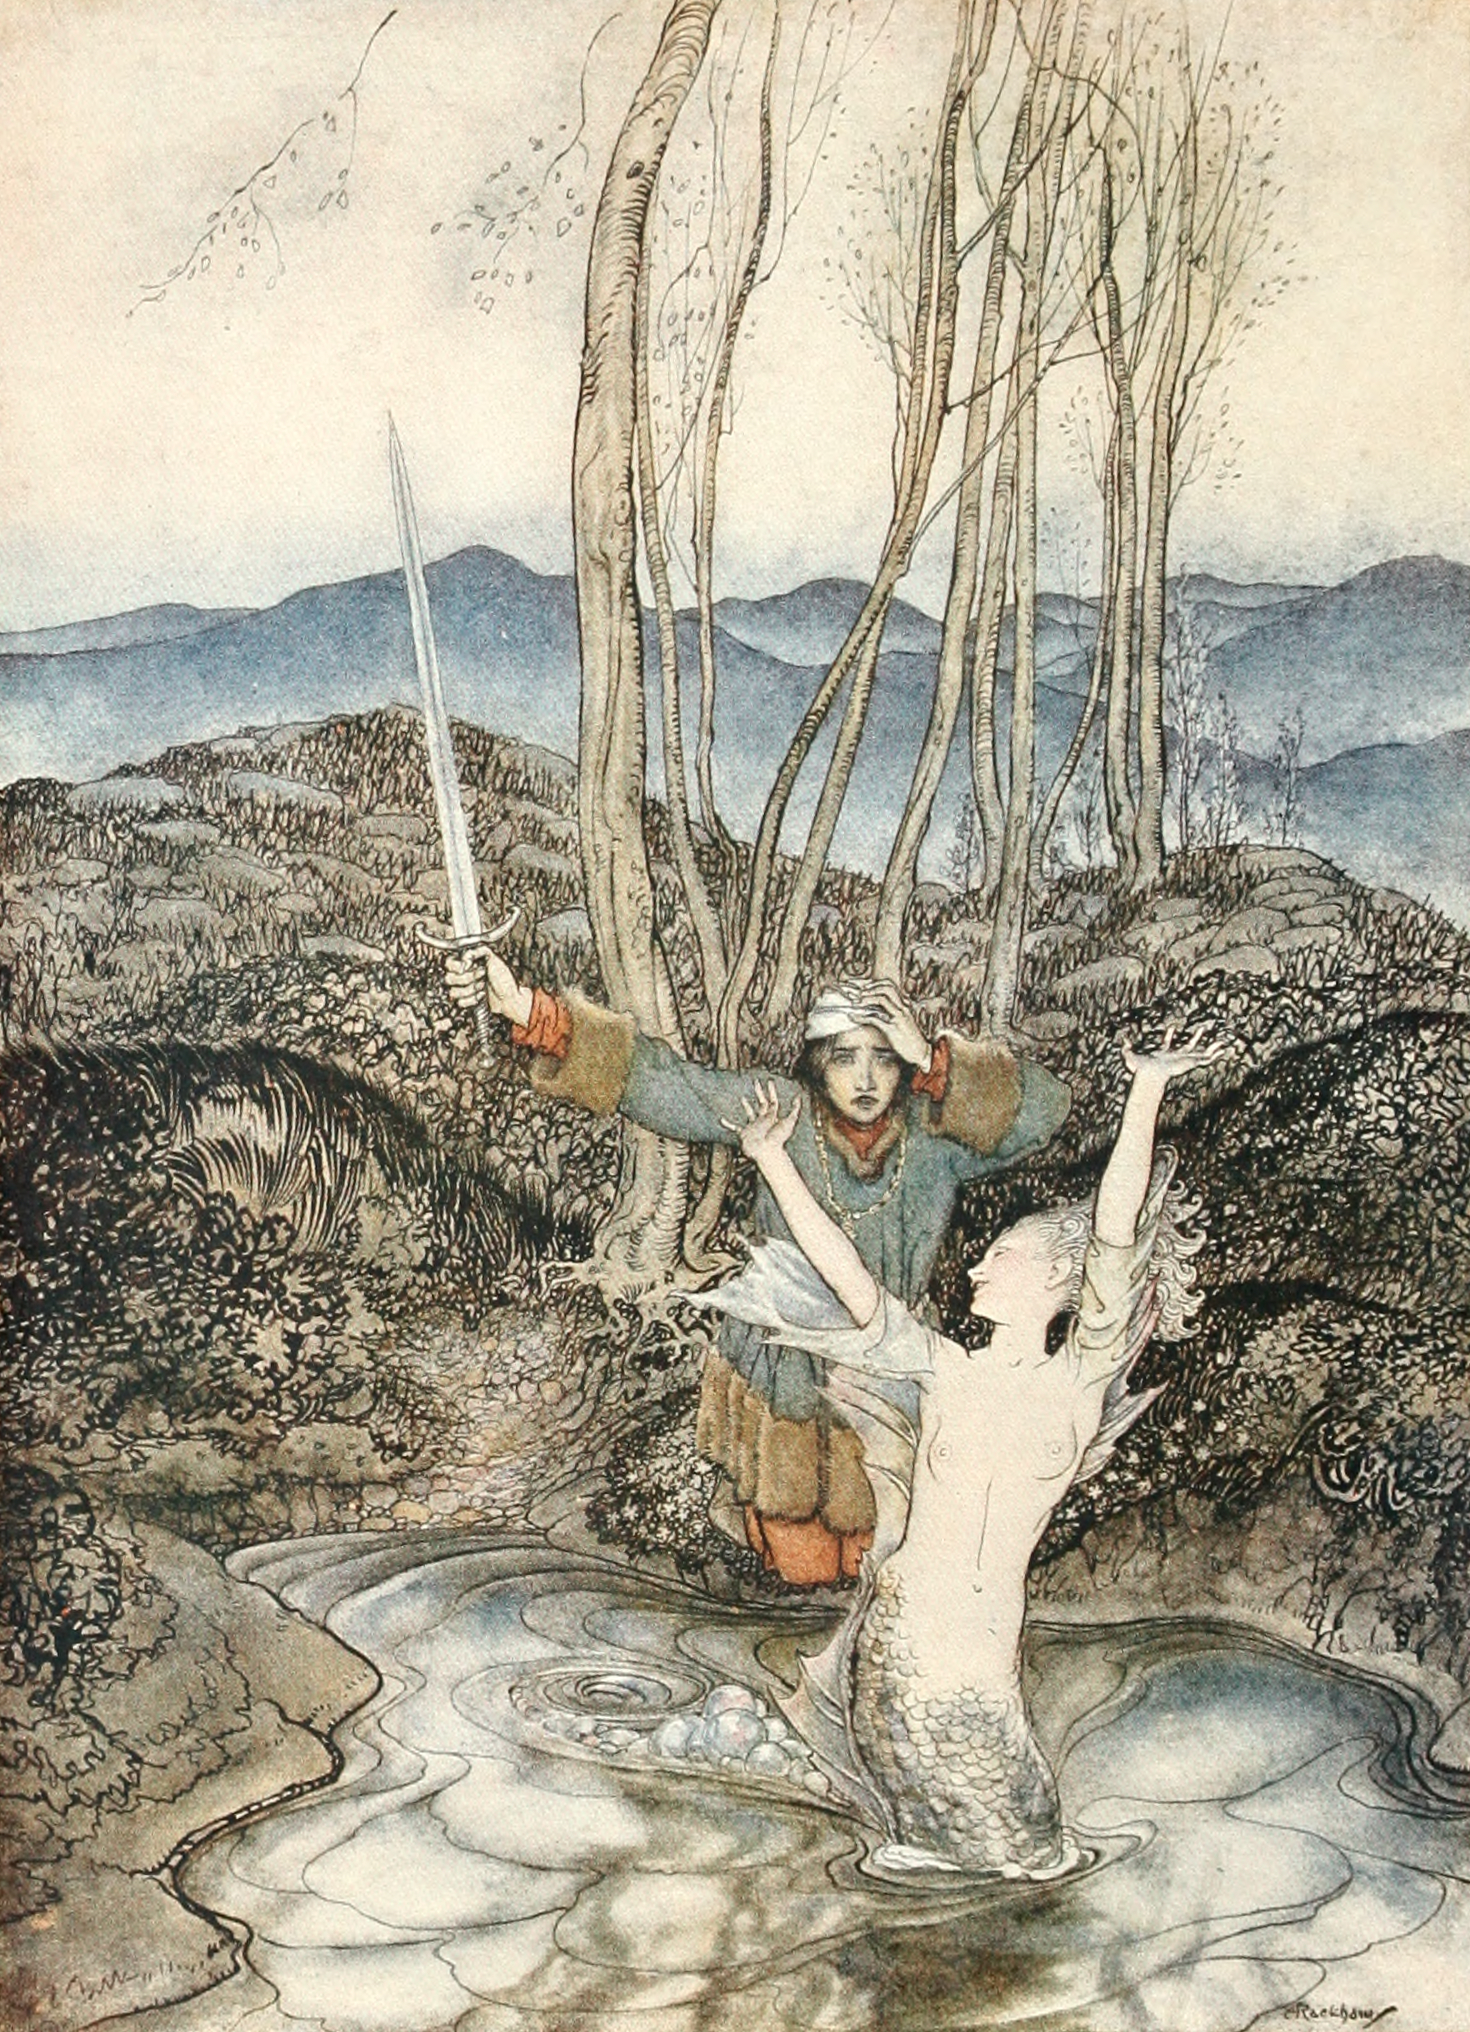 An image of Clerk Colvill and the Mermaid by Arthur Rackham.